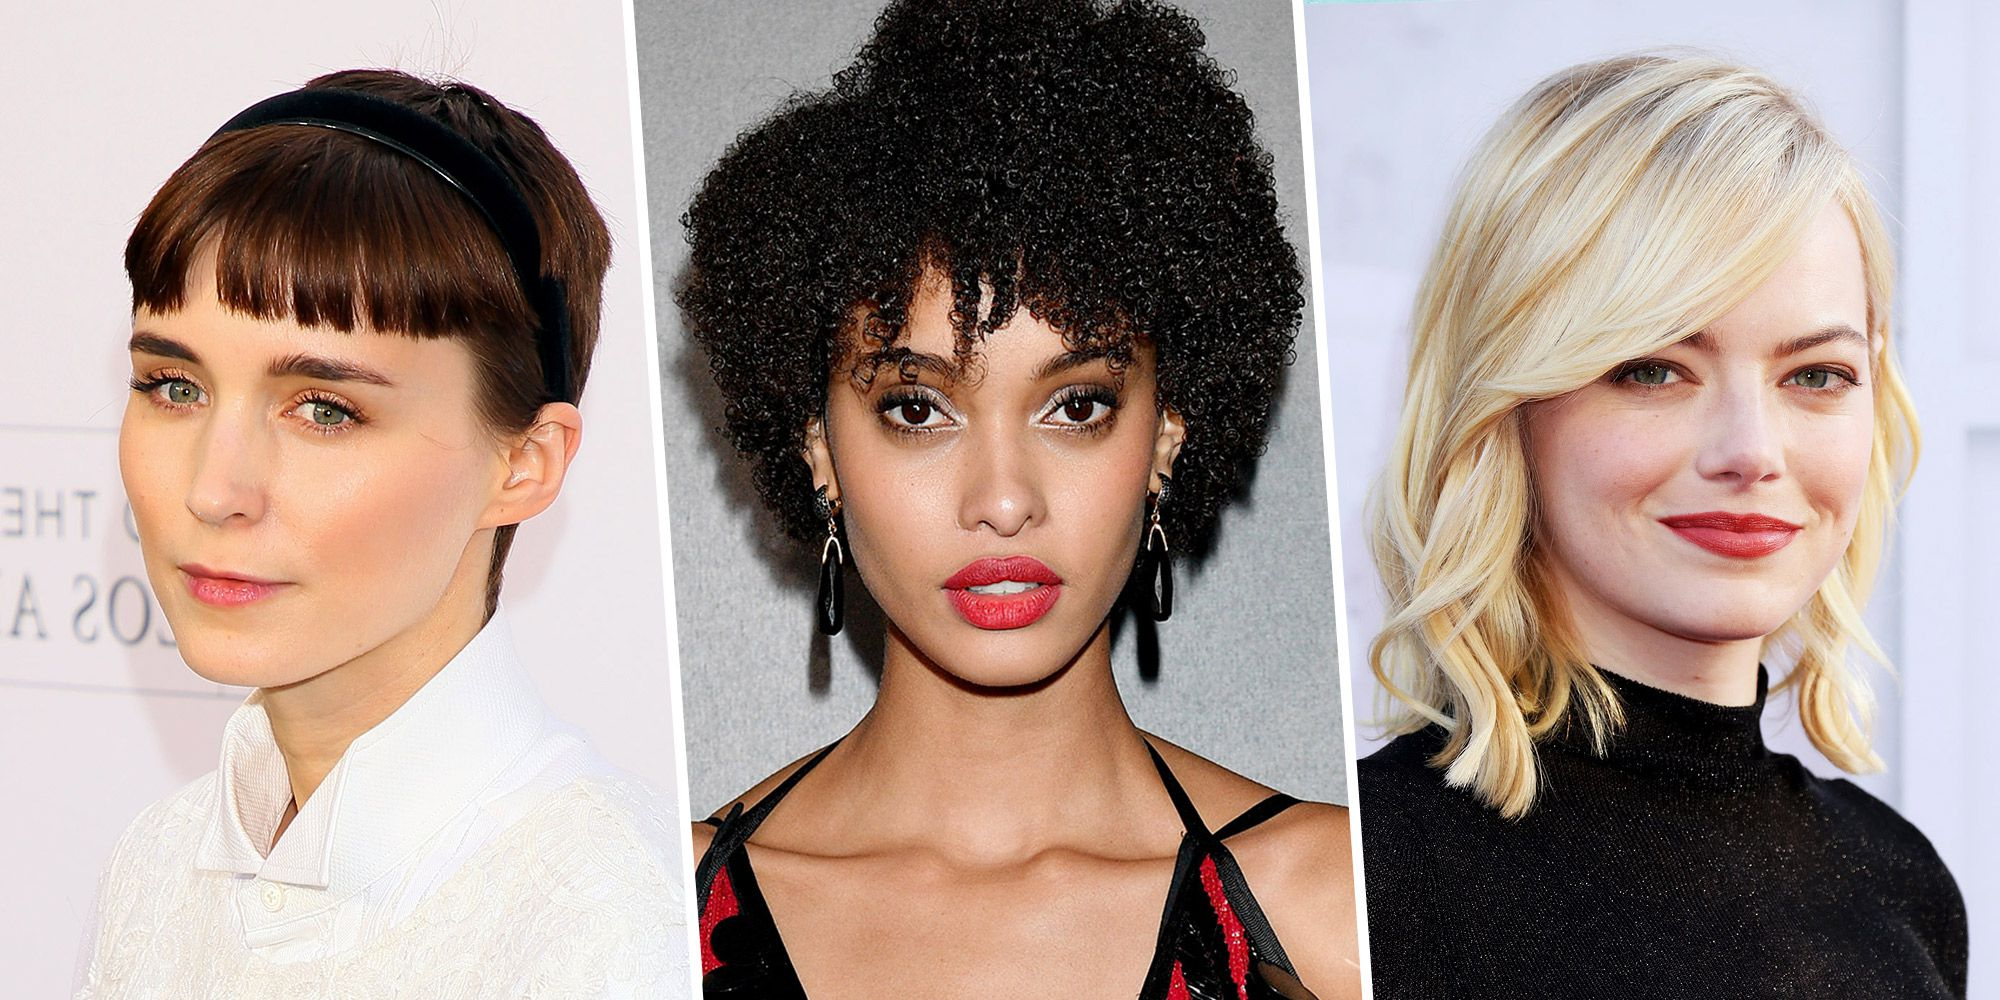 65 Best Short Hairstyles, Haircuts, And Short Hair Ideas For 2018 For Short Haircuts Styles For Black Hair (Gallery 22 of 25)